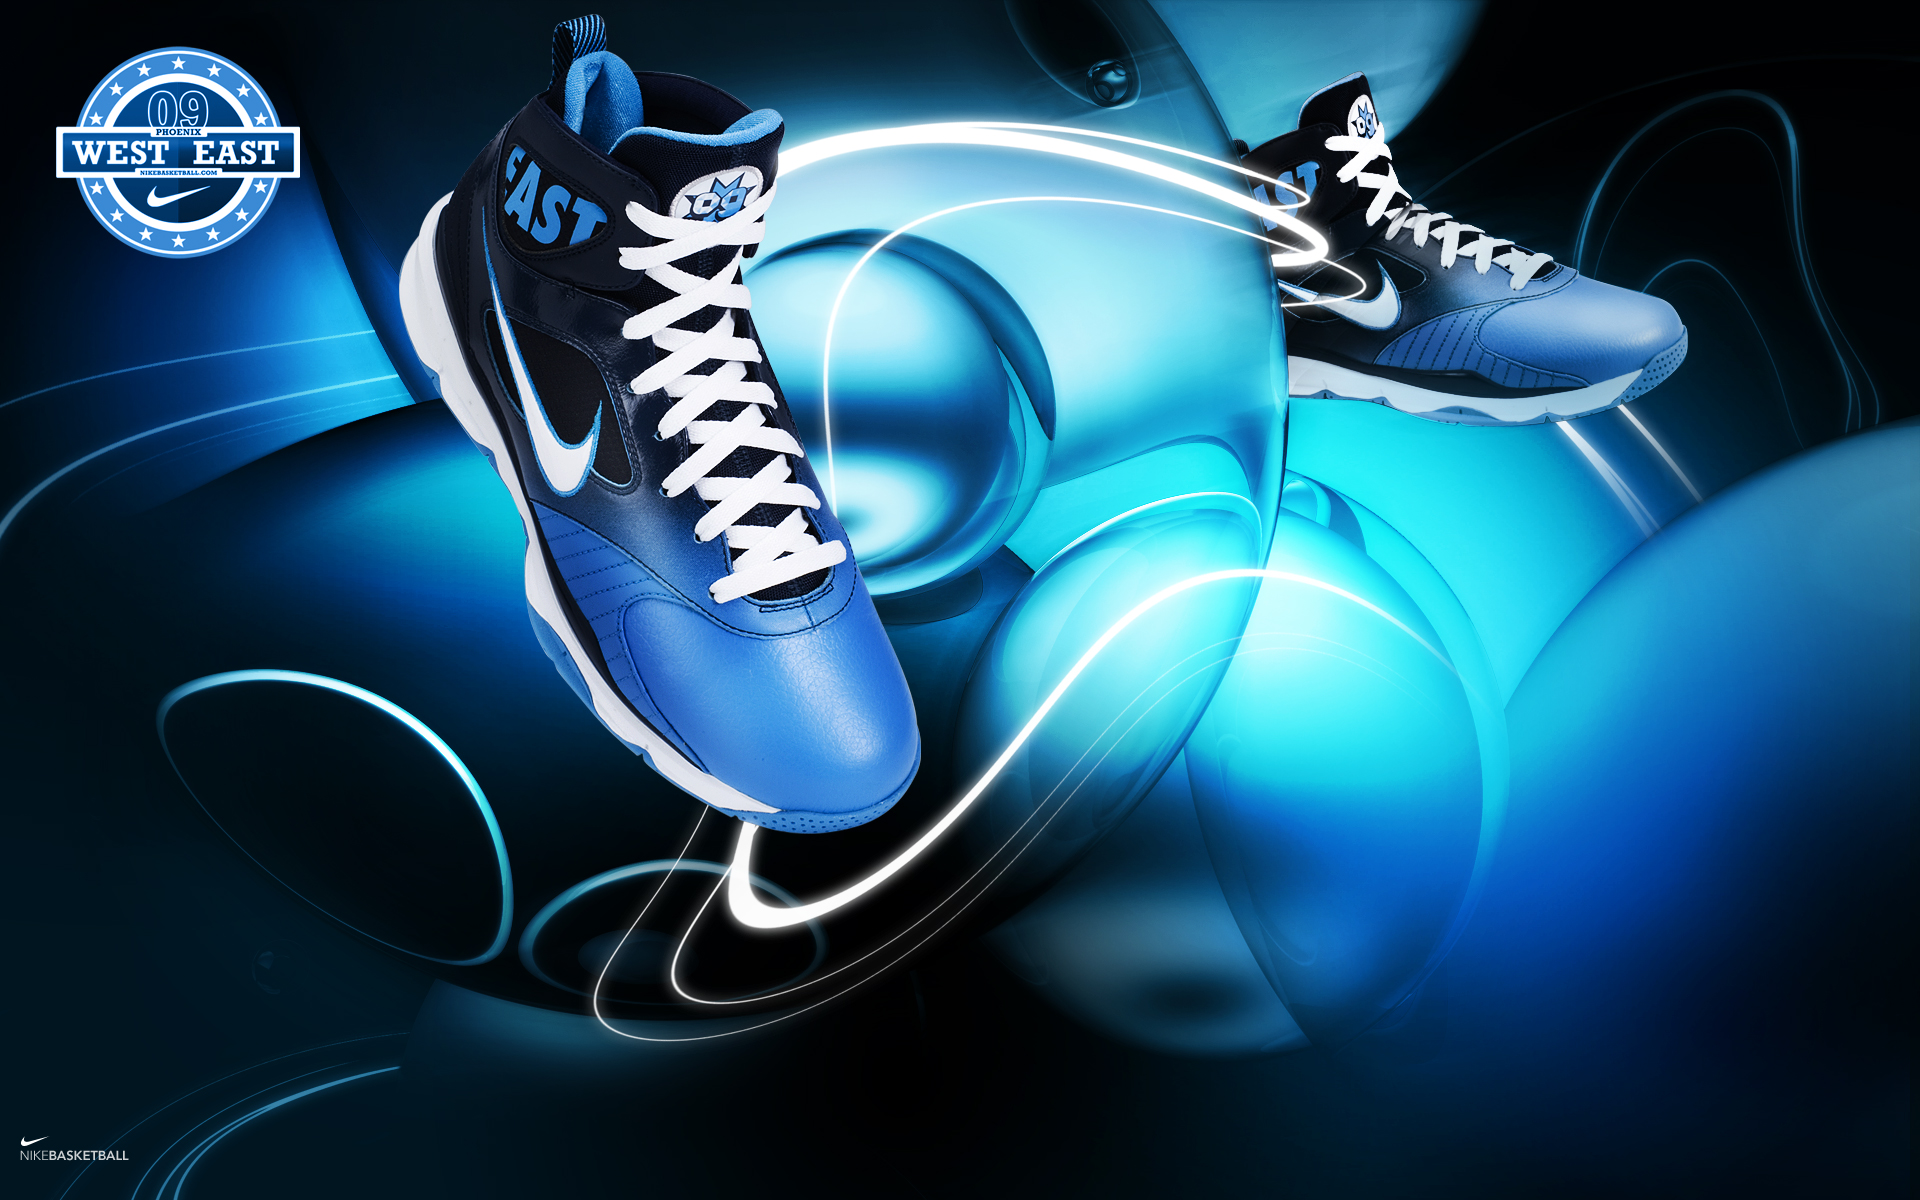 Nike Laptop Wallpaper Tumblr: [49+] Dope Nike Wallpapers On WallpaperSafari